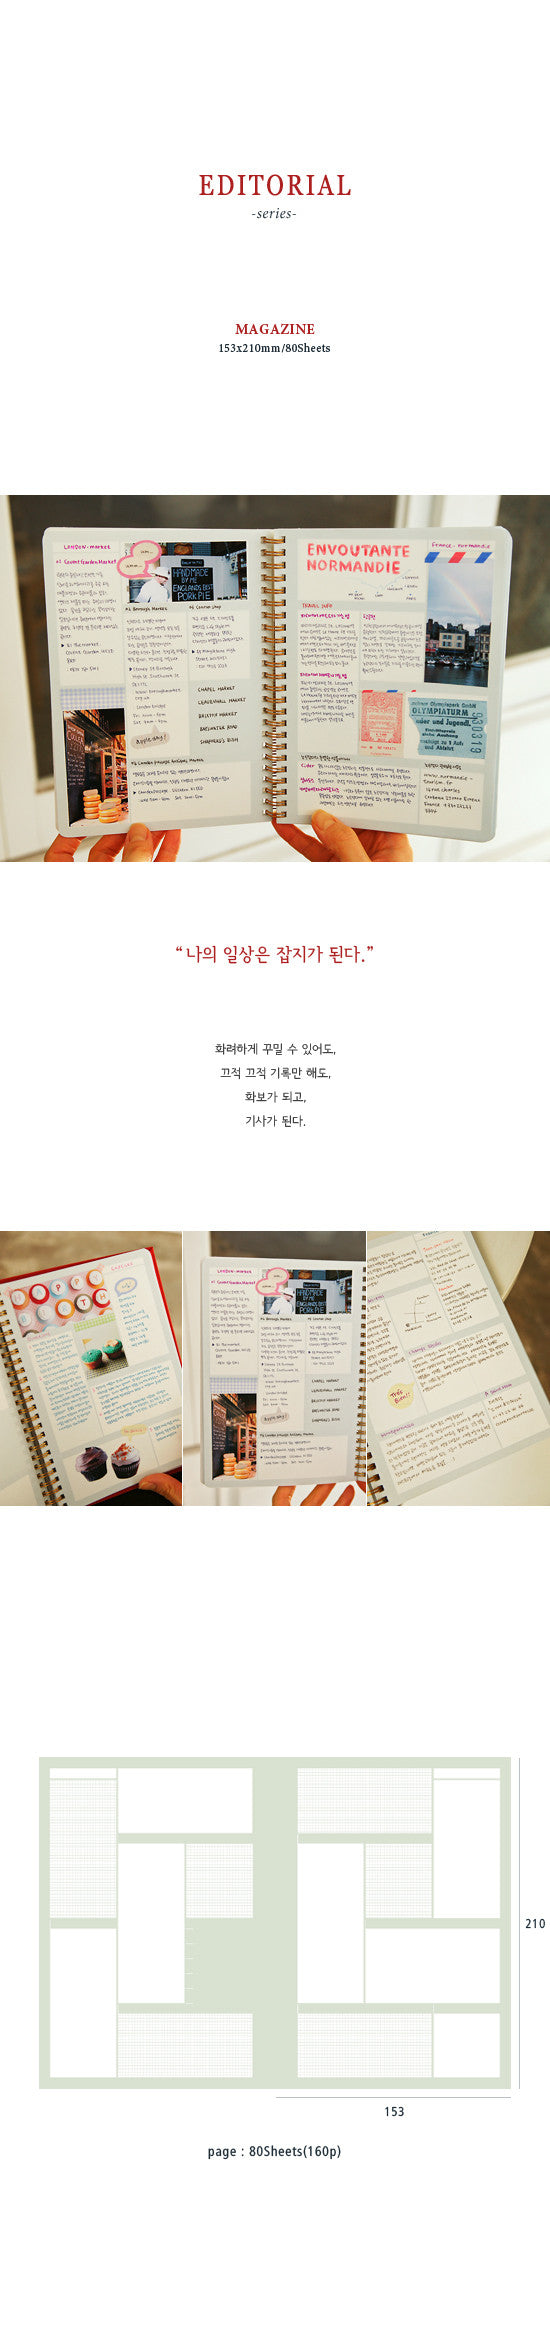 Notebook Magazine - Brief